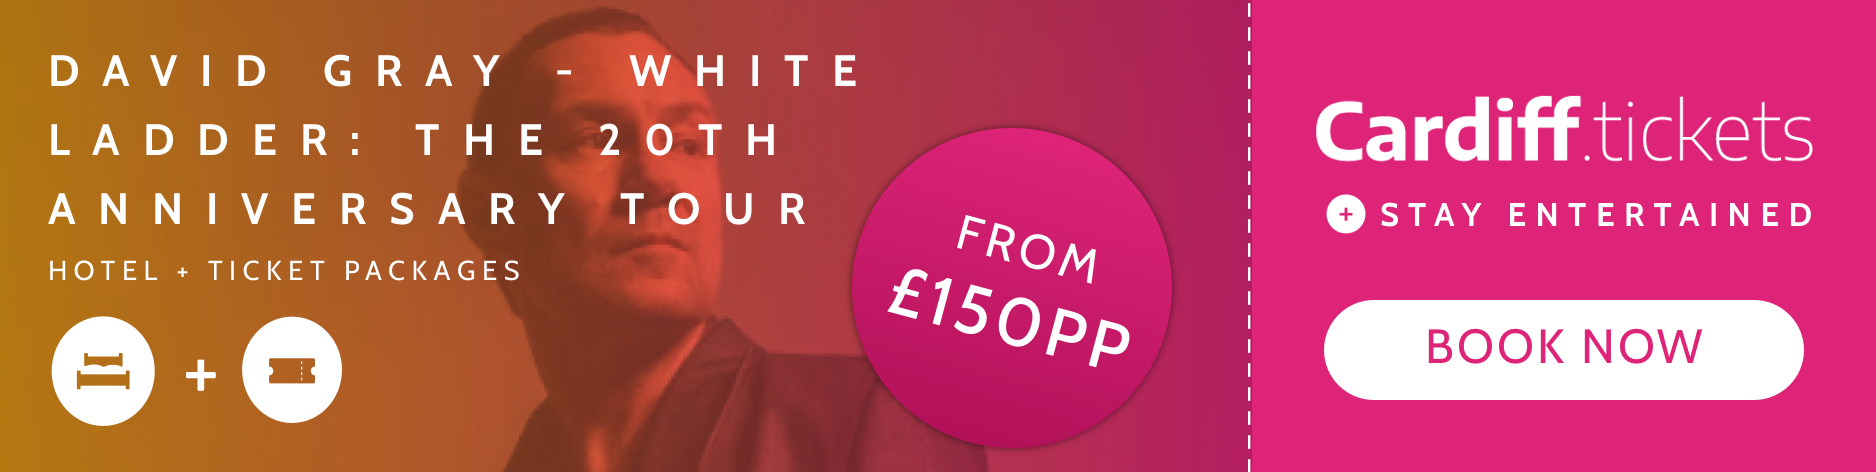 David Gray - White Ladder: the 20th Anniversary Tour tickets and hotel package